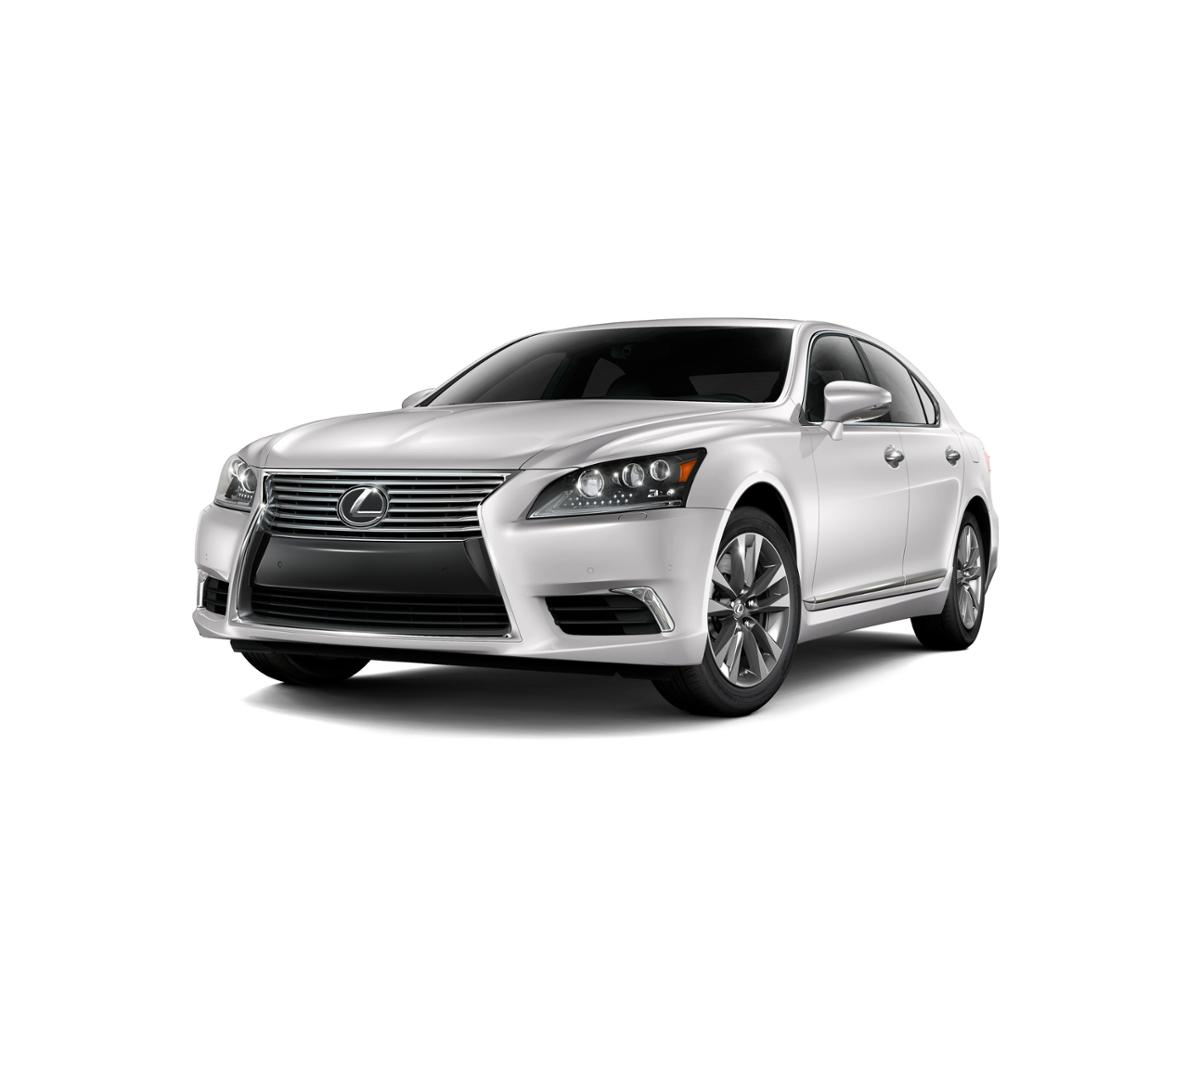 2017 Lexus LS 460 Vehicle Photo in Santa Barbara, CA 93105